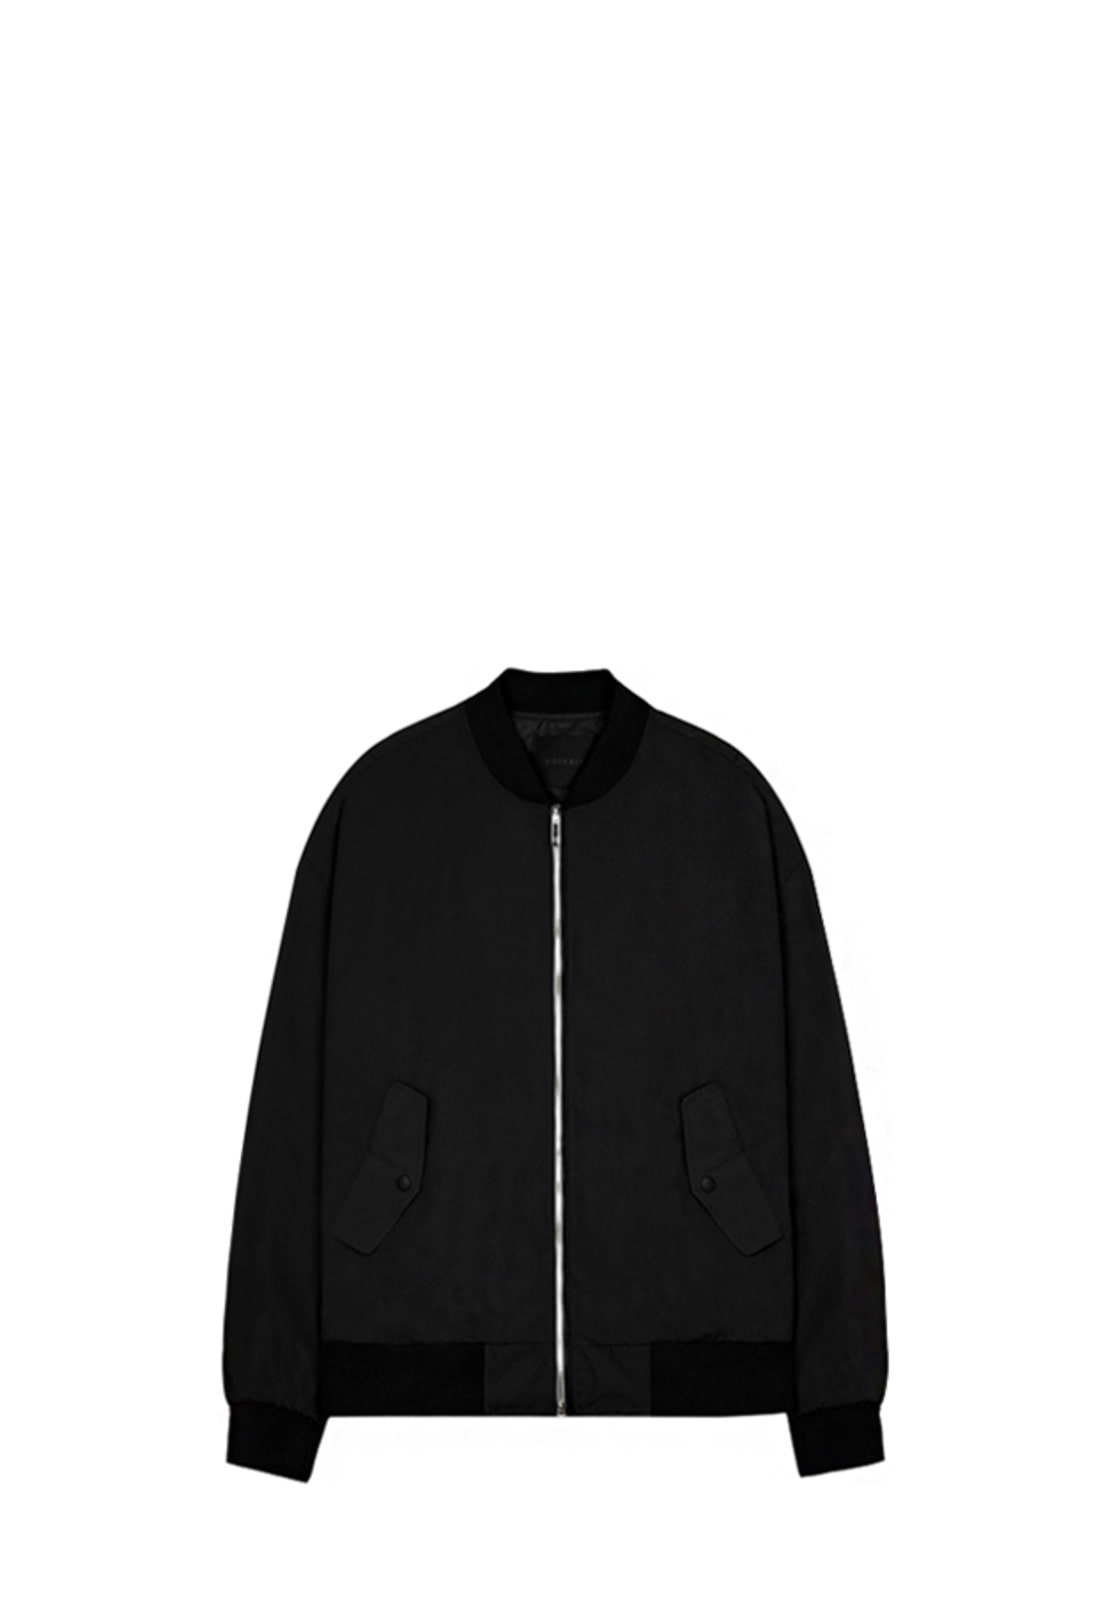 V620 SIMPLE OVERSIZE MA-1 JACKETBLACK